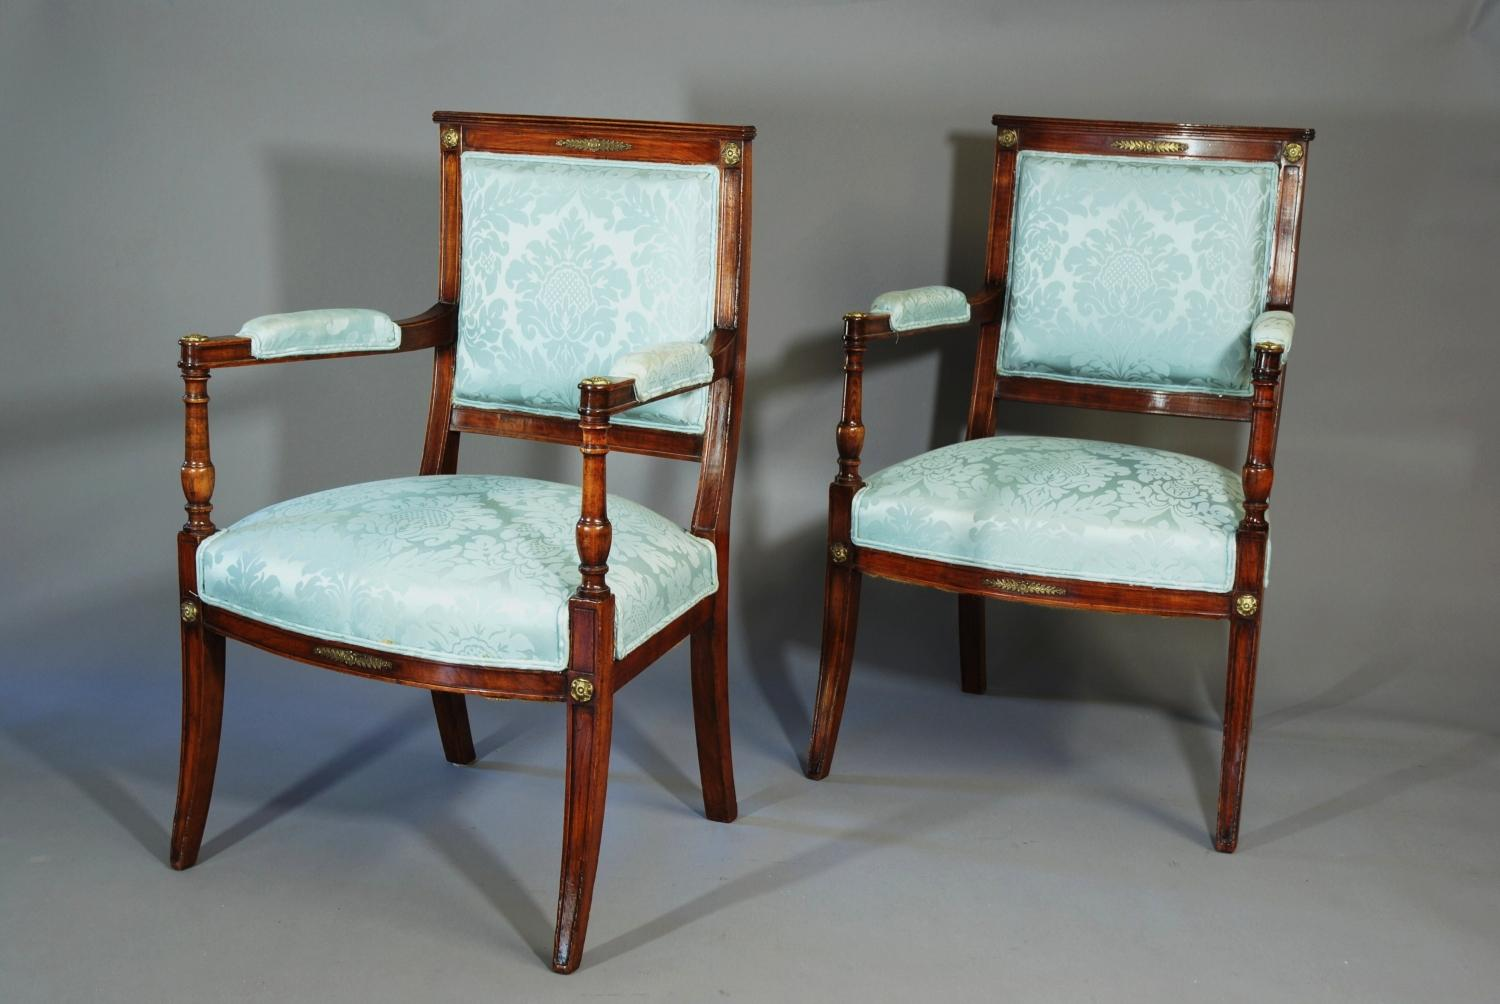 Three piece suite in the French salon style in SOLD ARCHIVE